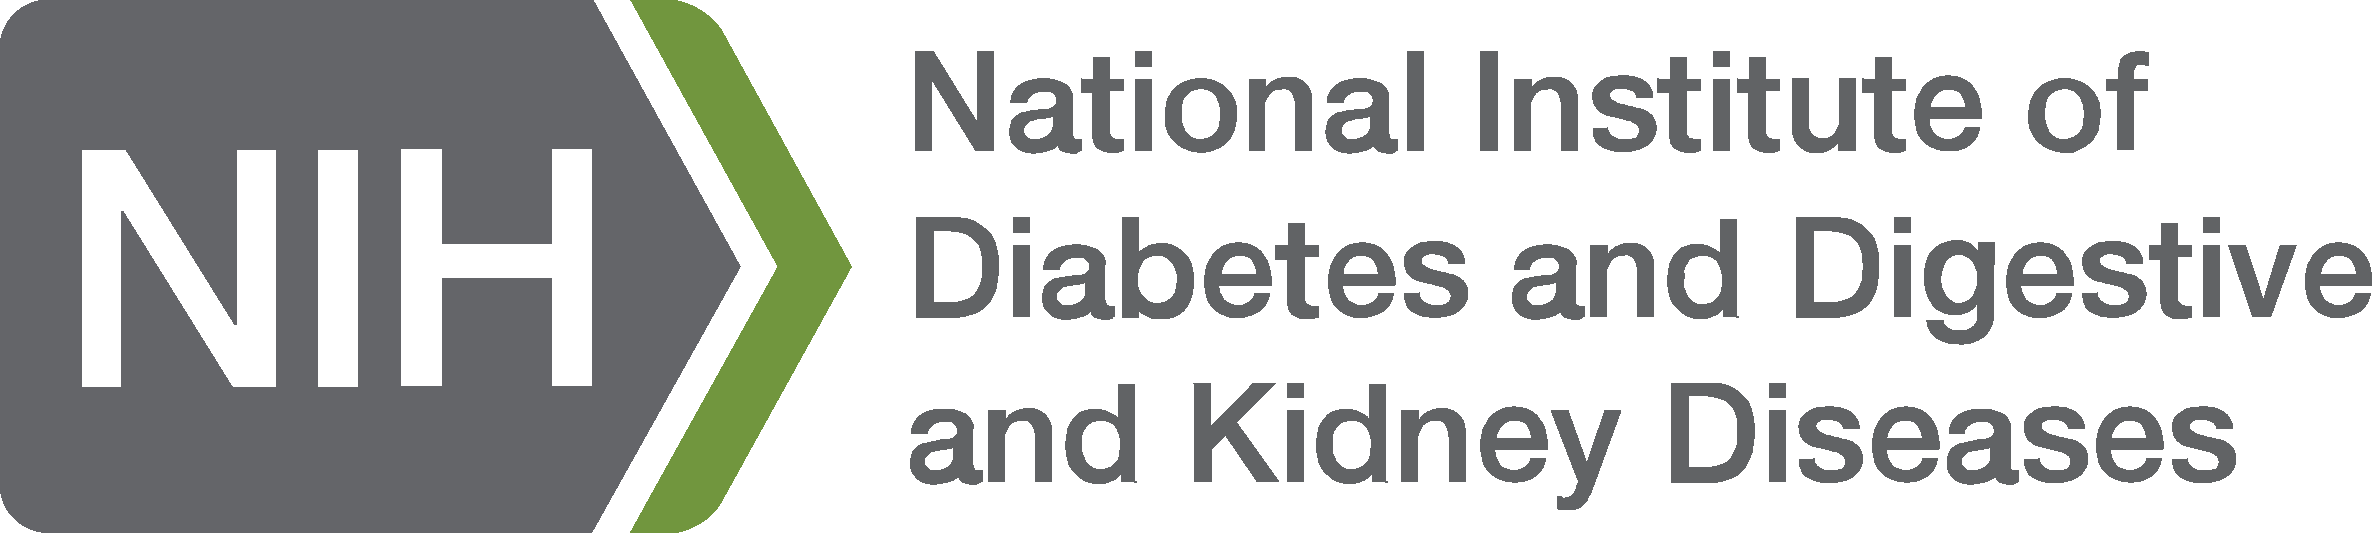 Source:  National Institute of Diabetes and Digestive and Kidney Diseases